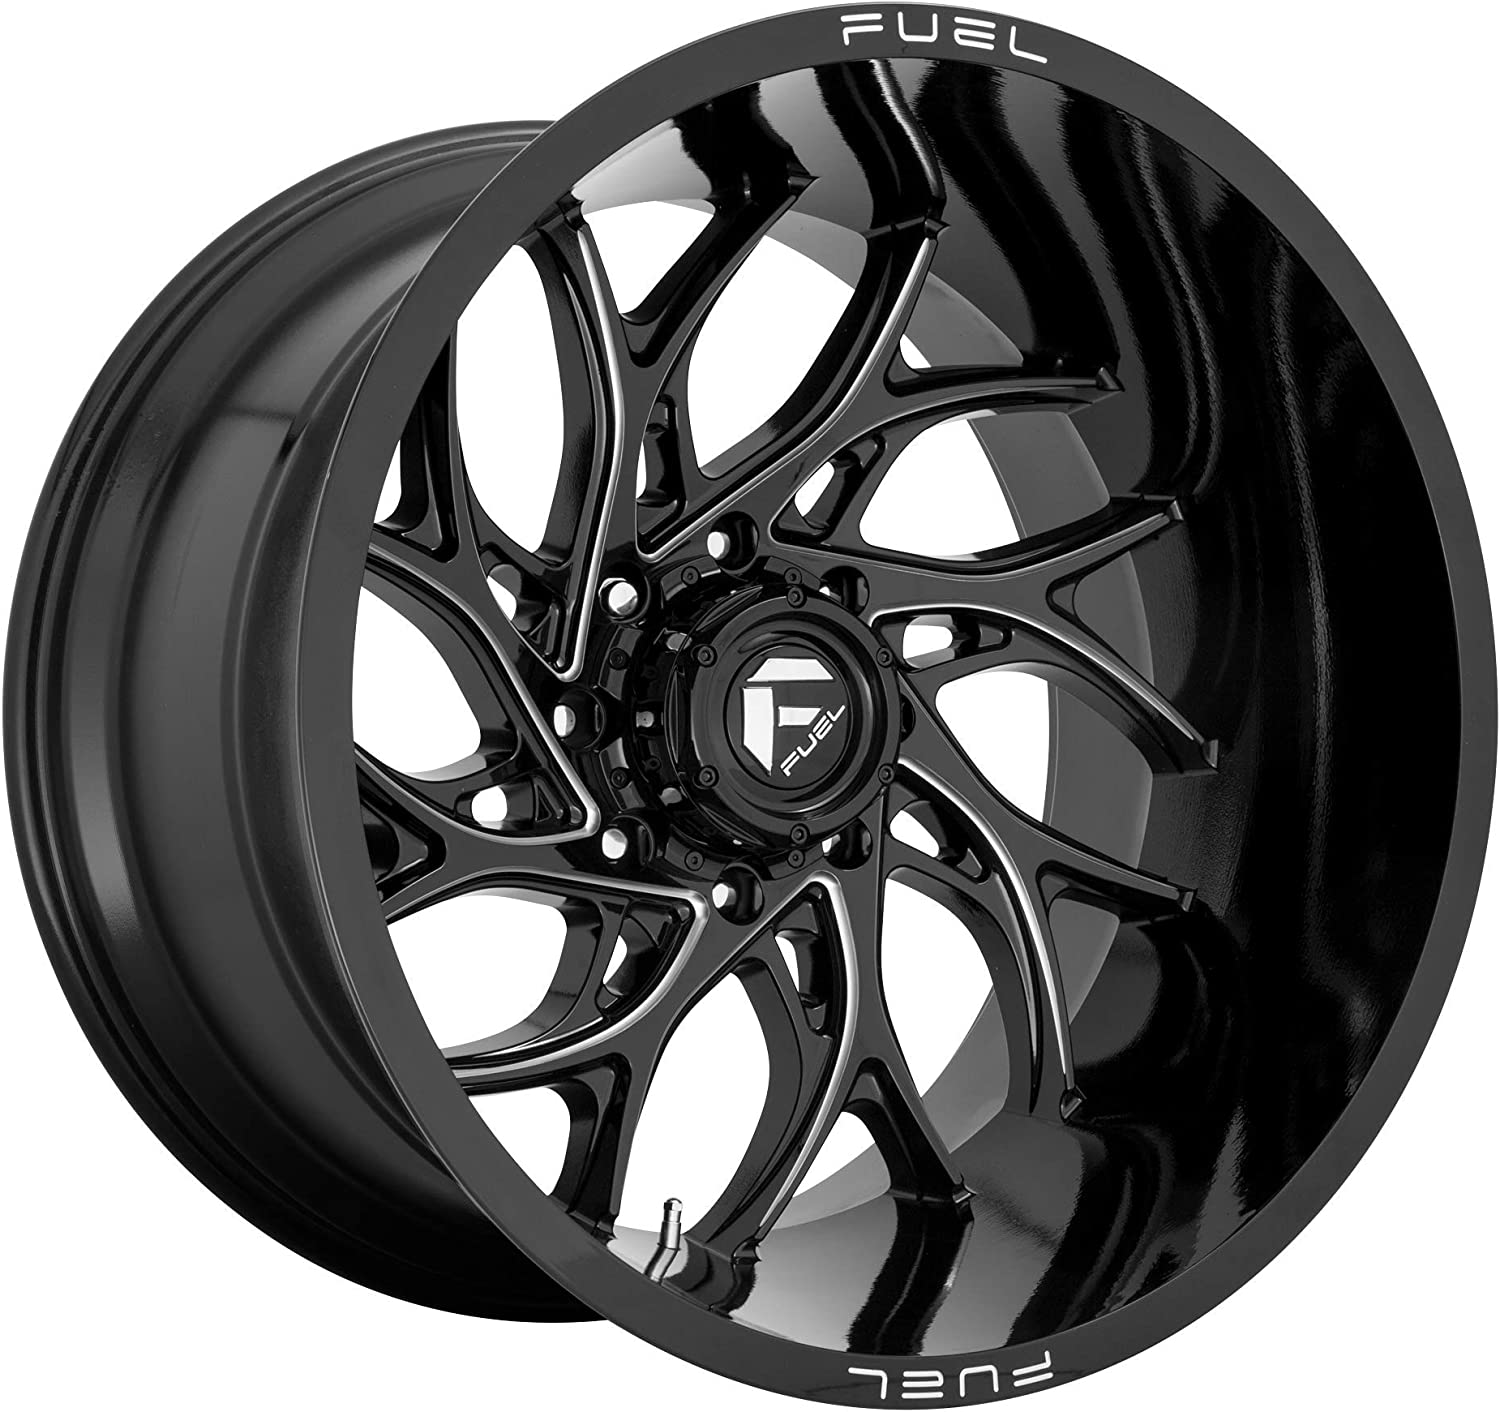 Fuel Offroad 55% OFF Runner 20x9 6x139.70 Shipping included Milled Black 1mm Gloss